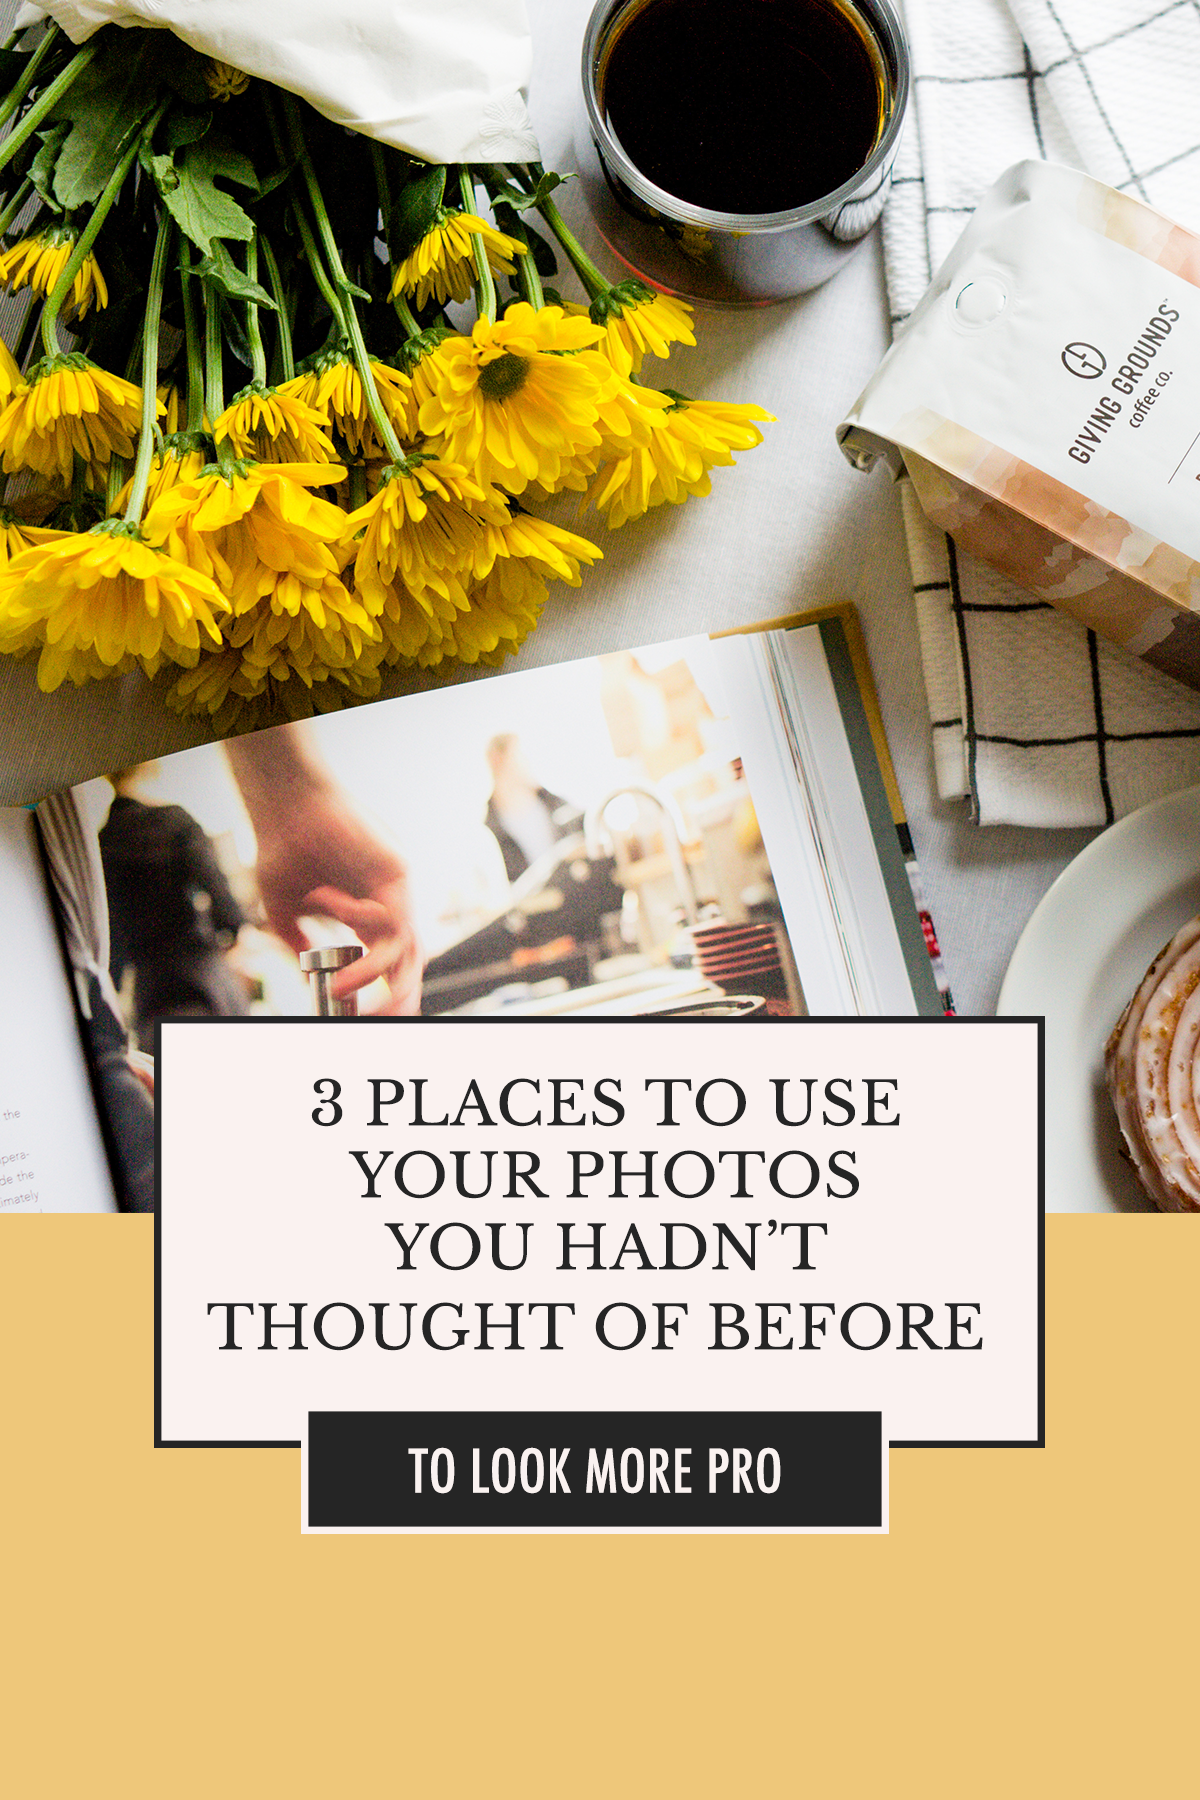 Photos are expensive and time-consuming, so they should bring us joy for more than one project. Here are 3 ideas for ways to get more mileage out of photos you already have! | Photo Ideas with Alexis The Greek